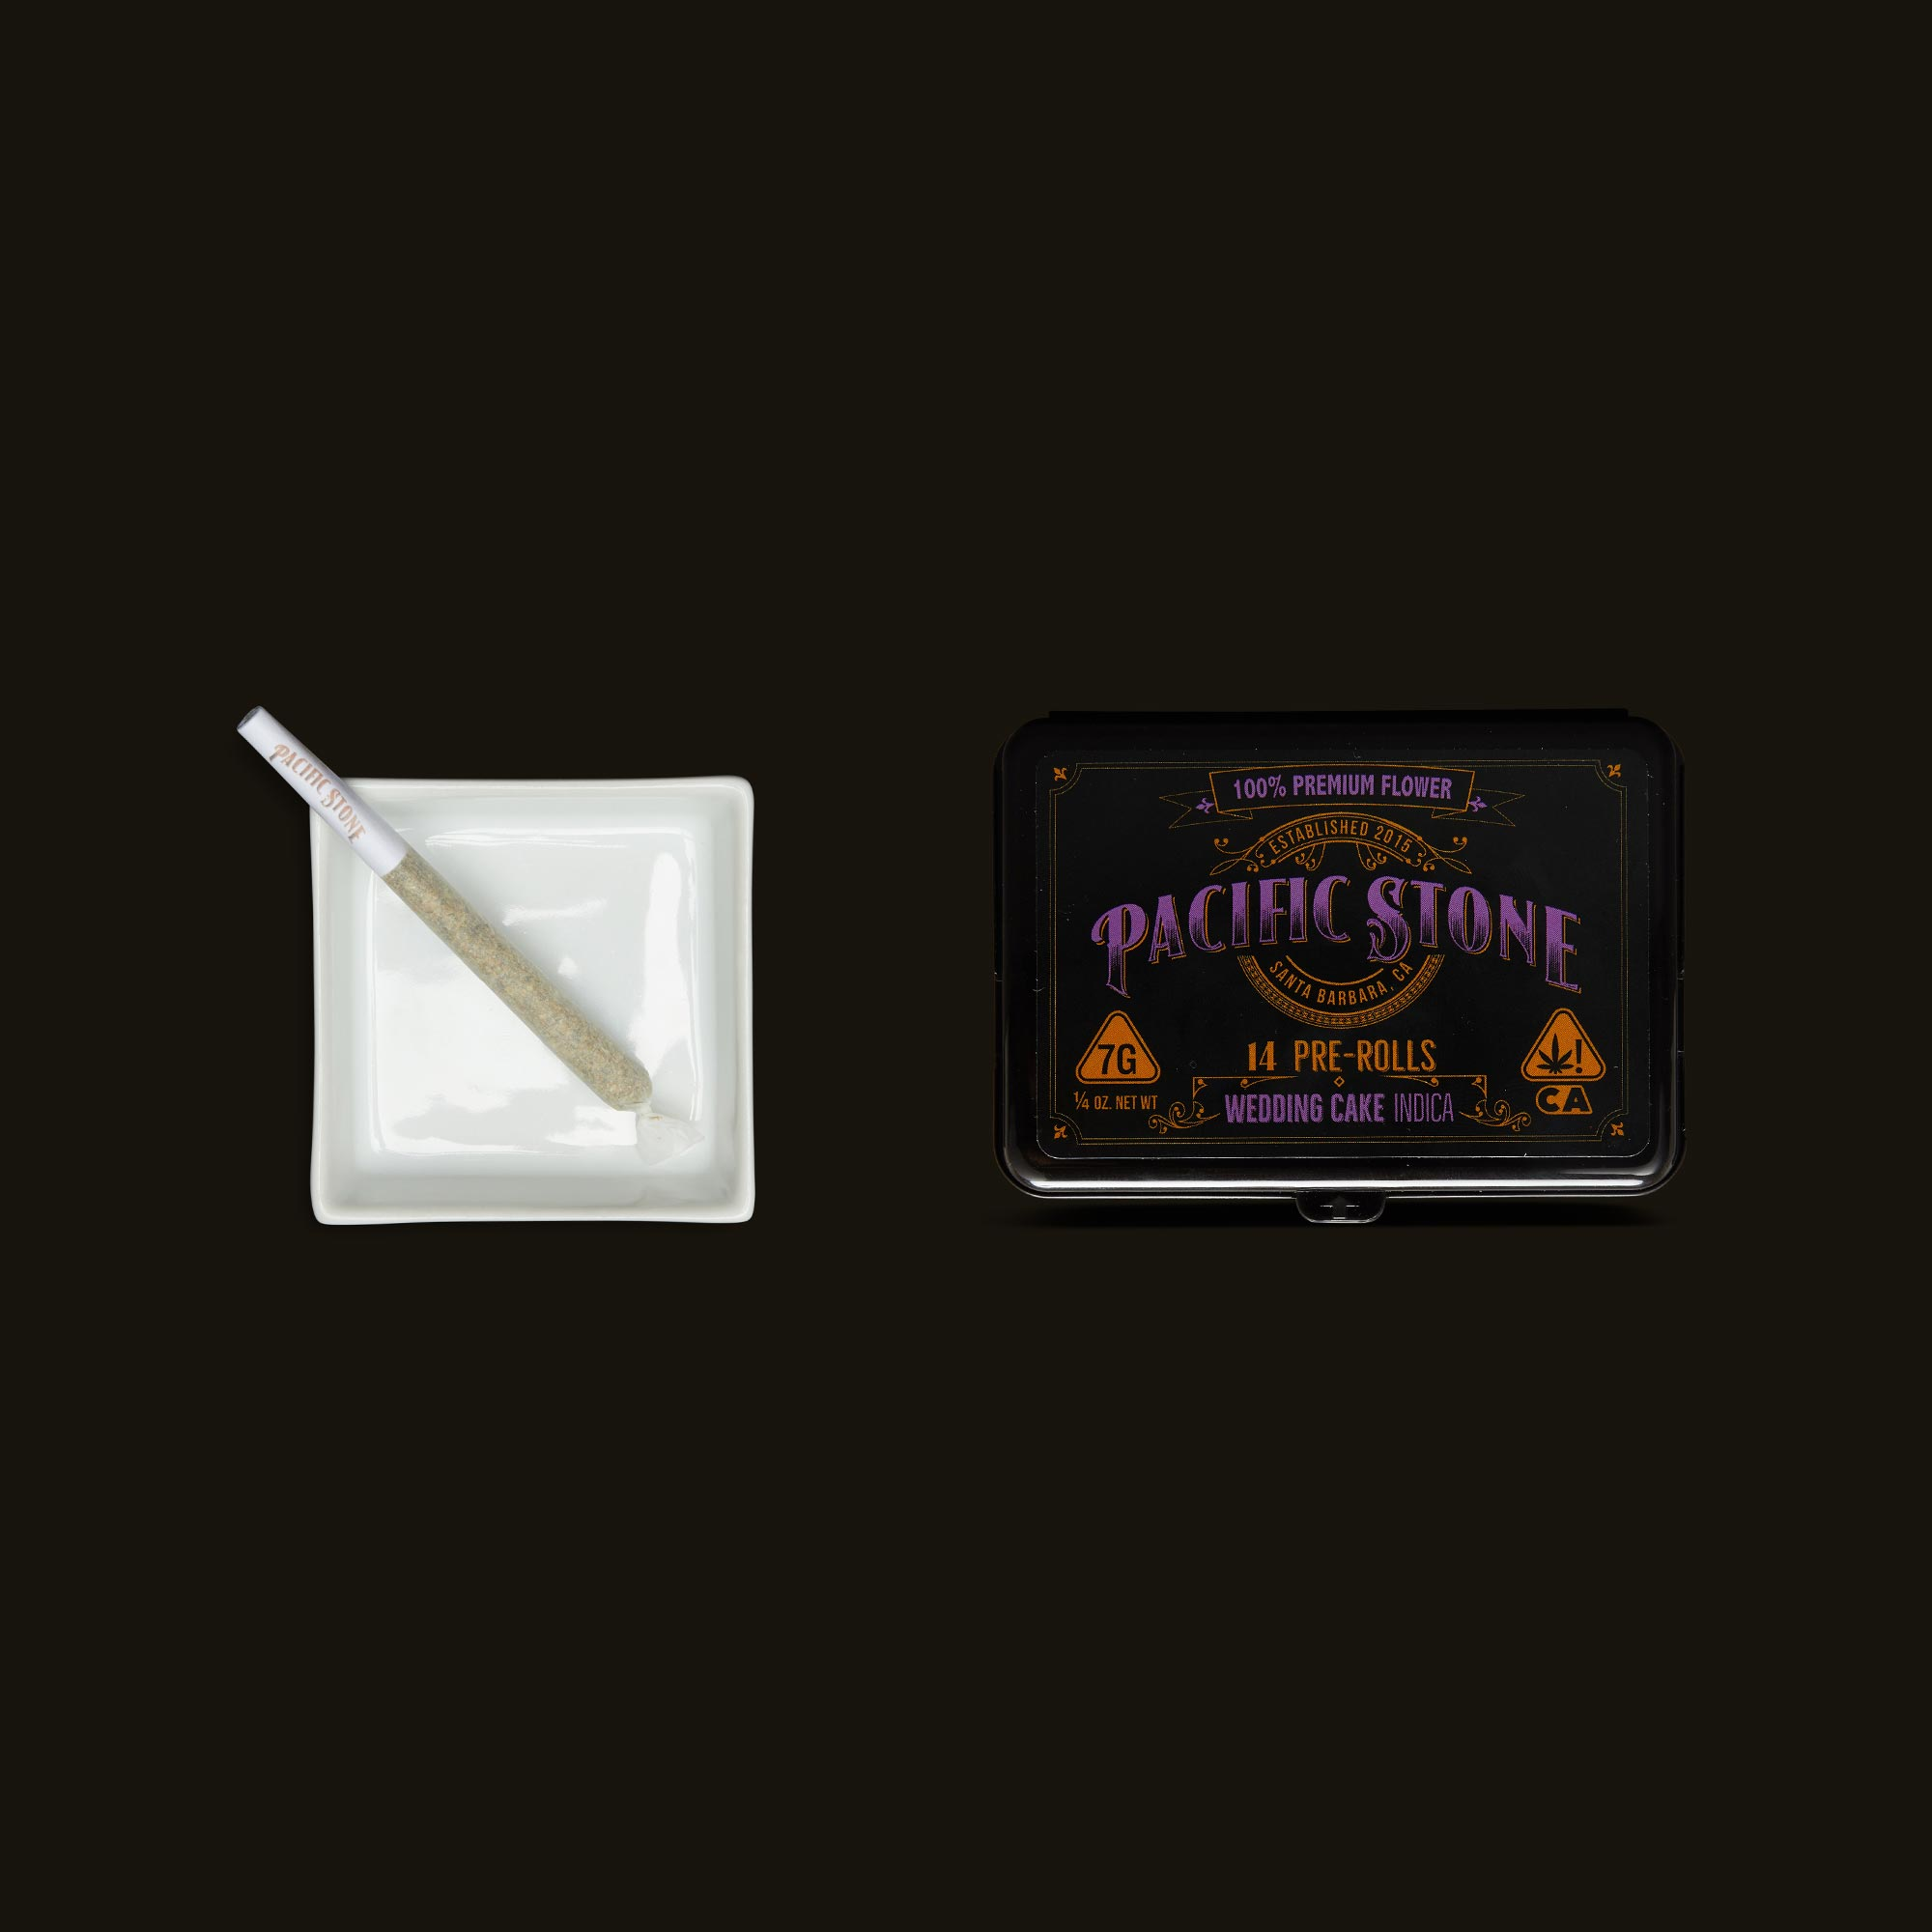 Pacific Stone Wedding Cake Pre-Roll Pack